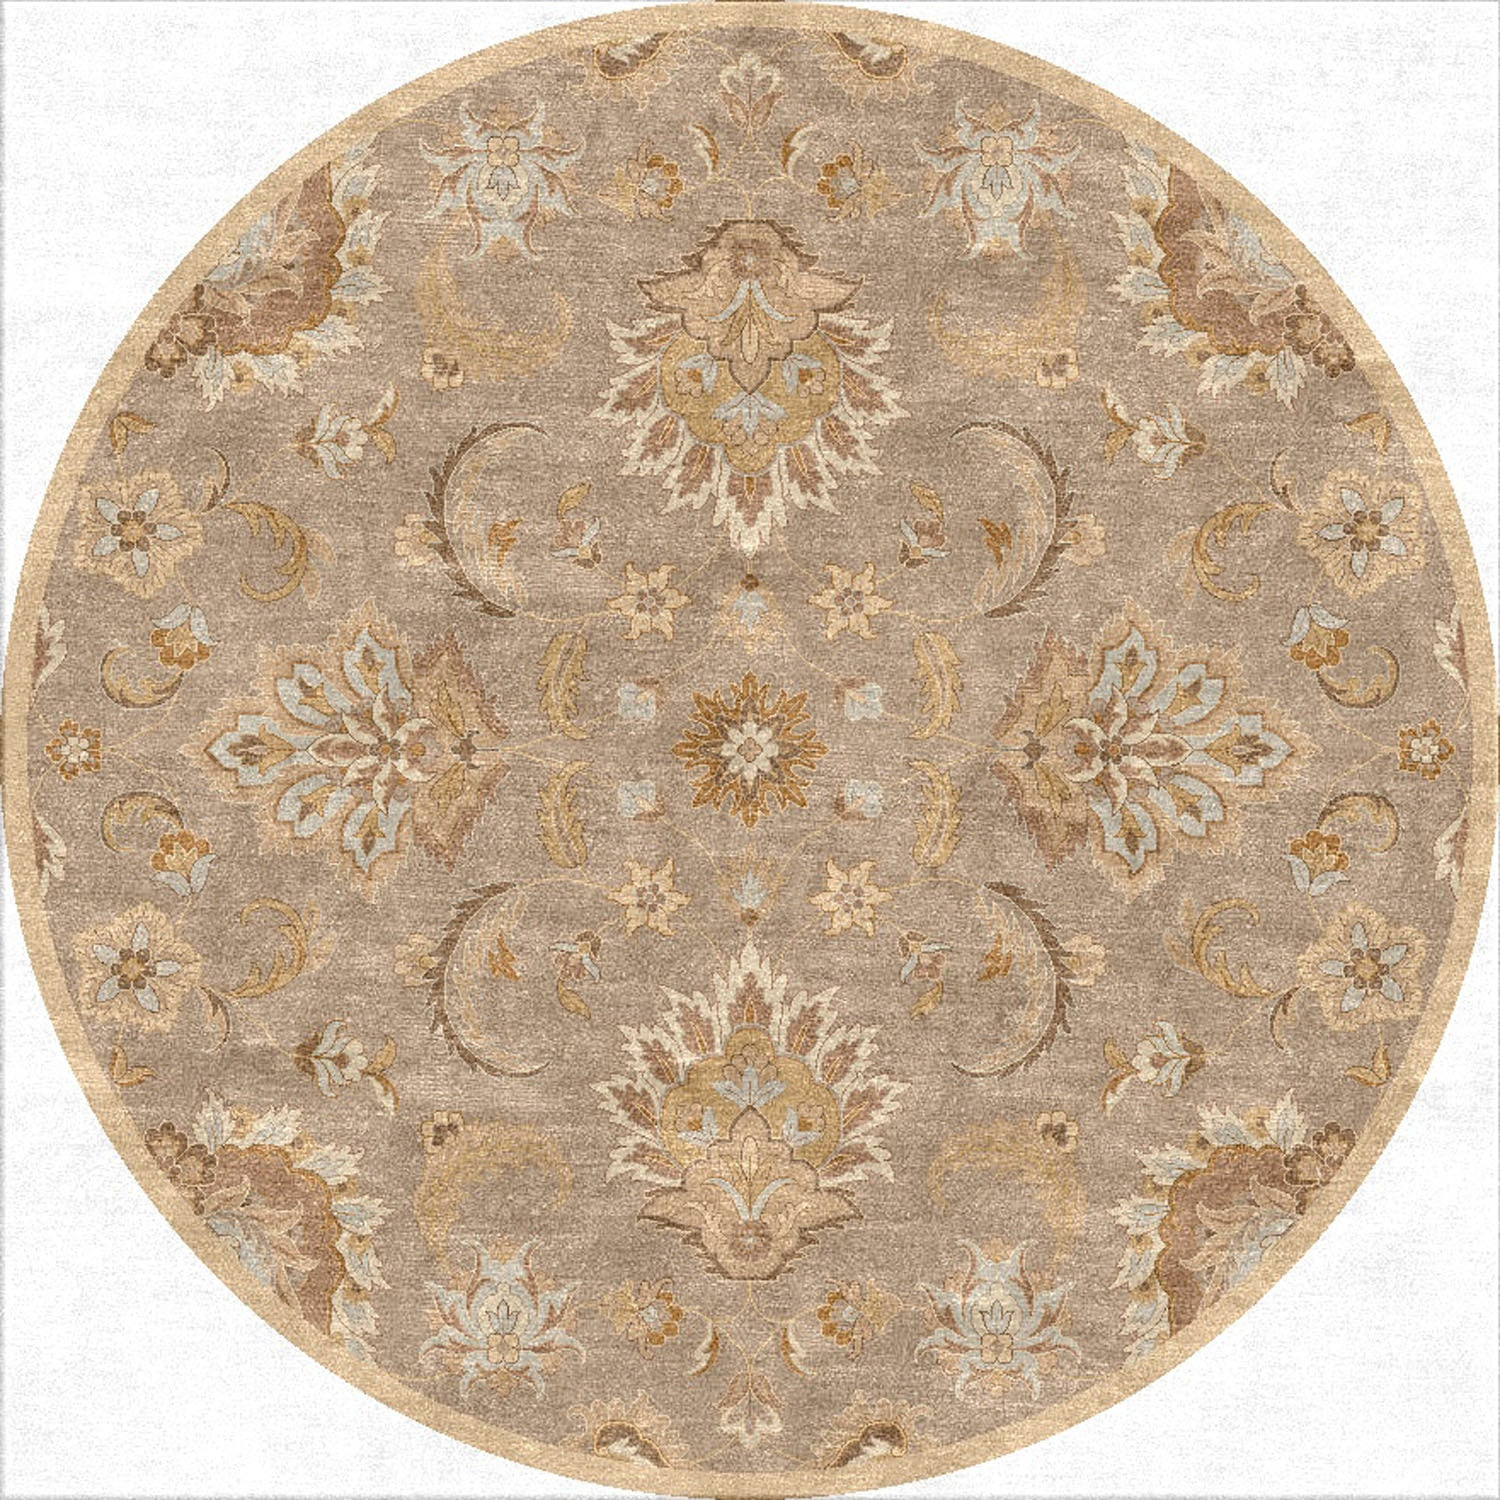 Mythos Abers Silver Gray/Soft Gold Round Rug